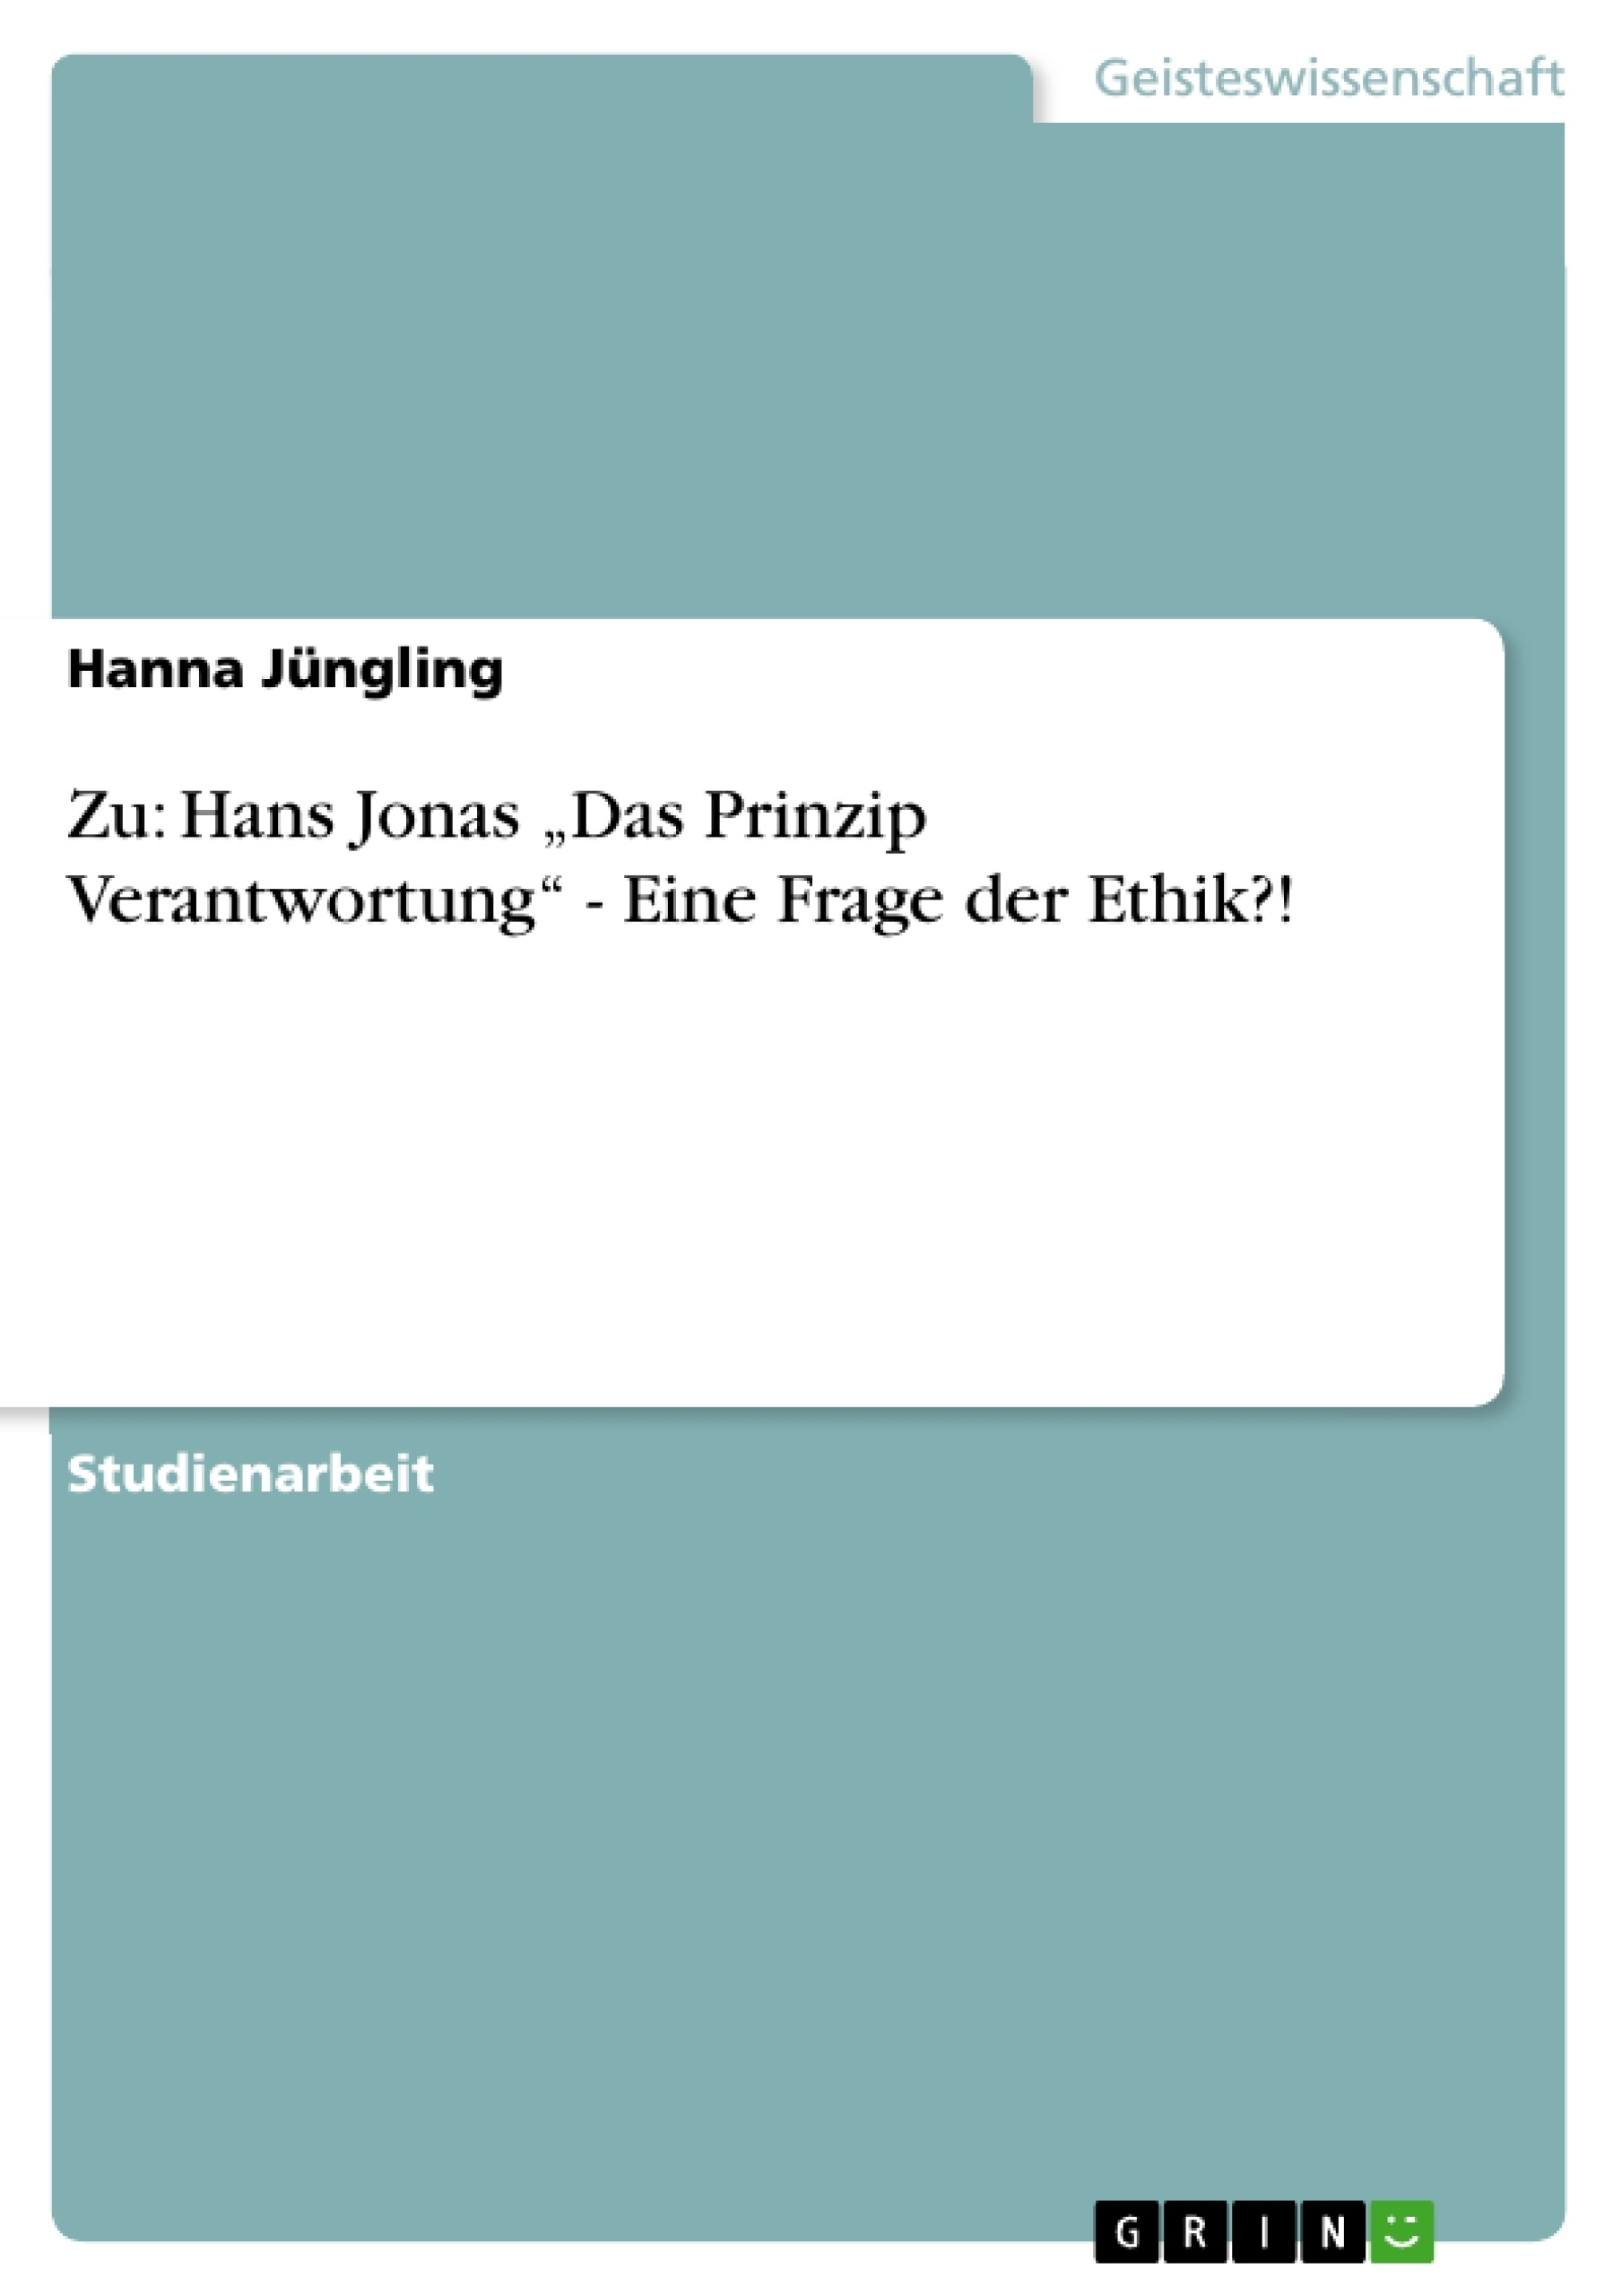 hans jonas philosophical essays To have another look at hans jonas' essay i mentioned yesterday  (and  jonas) was critical of certain elements of heidegger's philosophy.